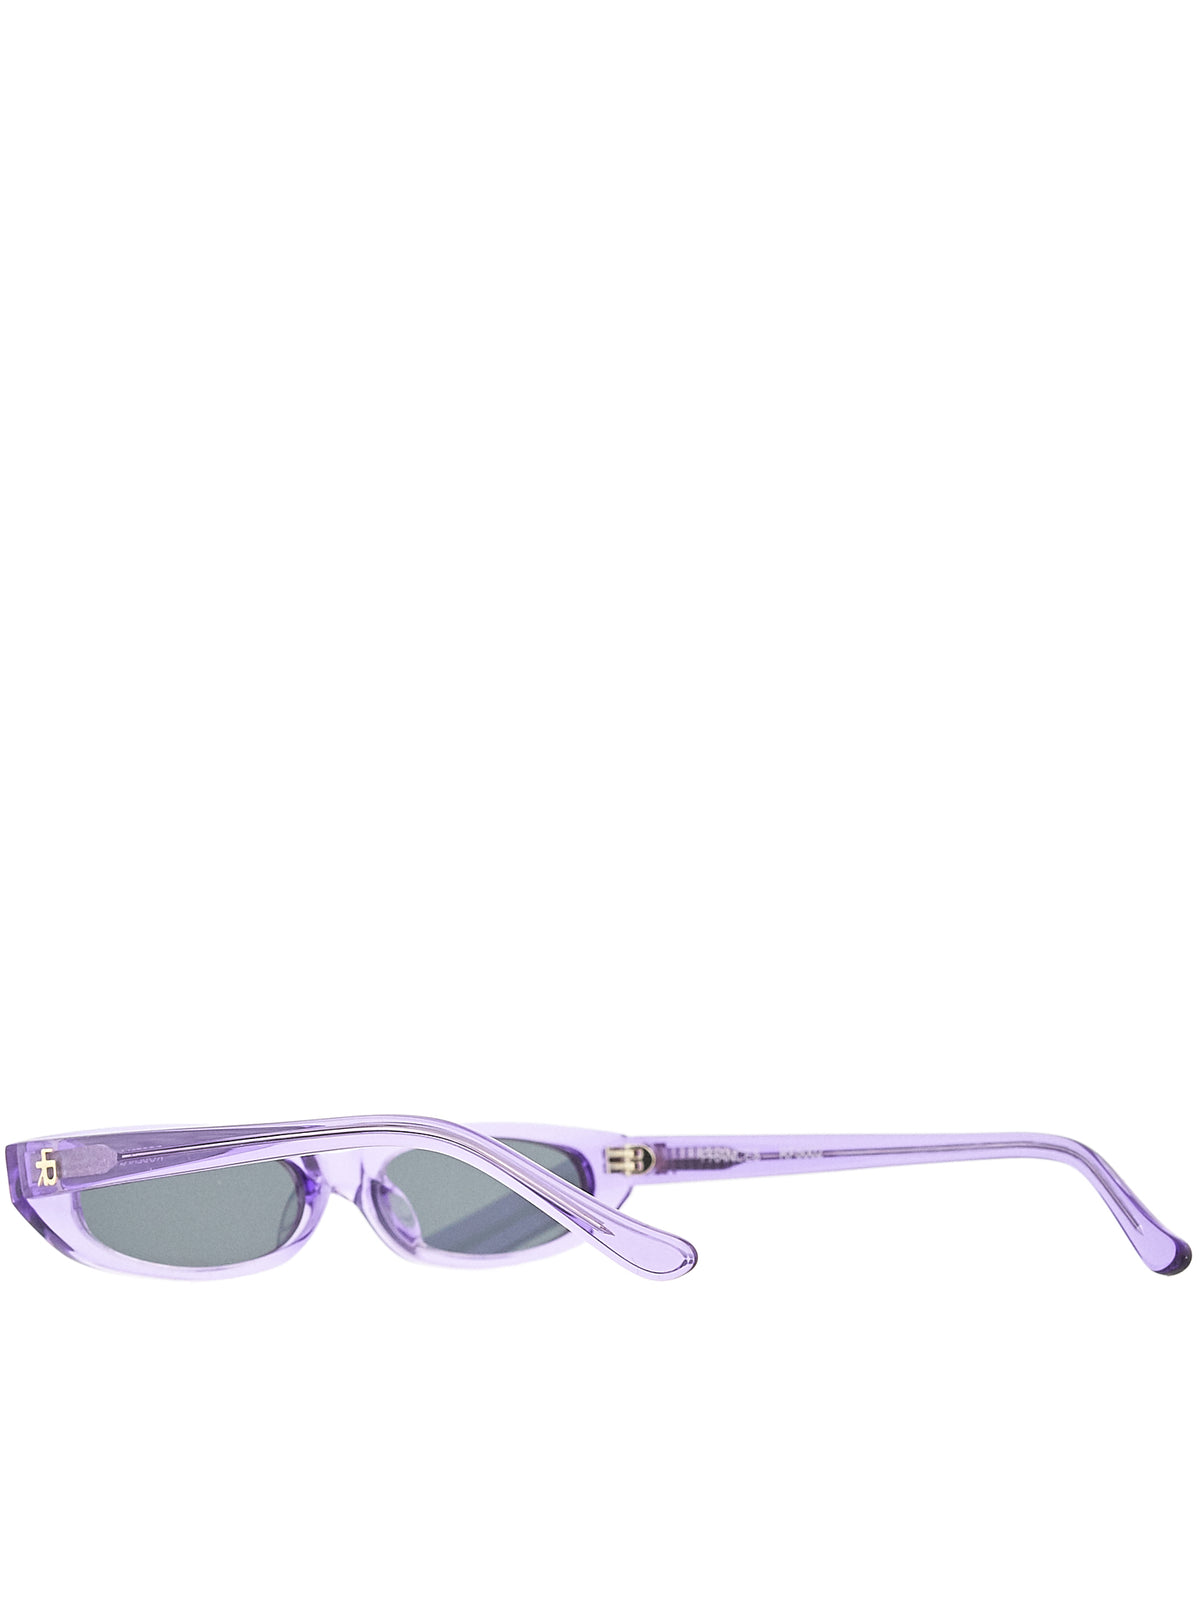 Roberi & Fraud Purple Sunglasses - Hlorenzo Detail